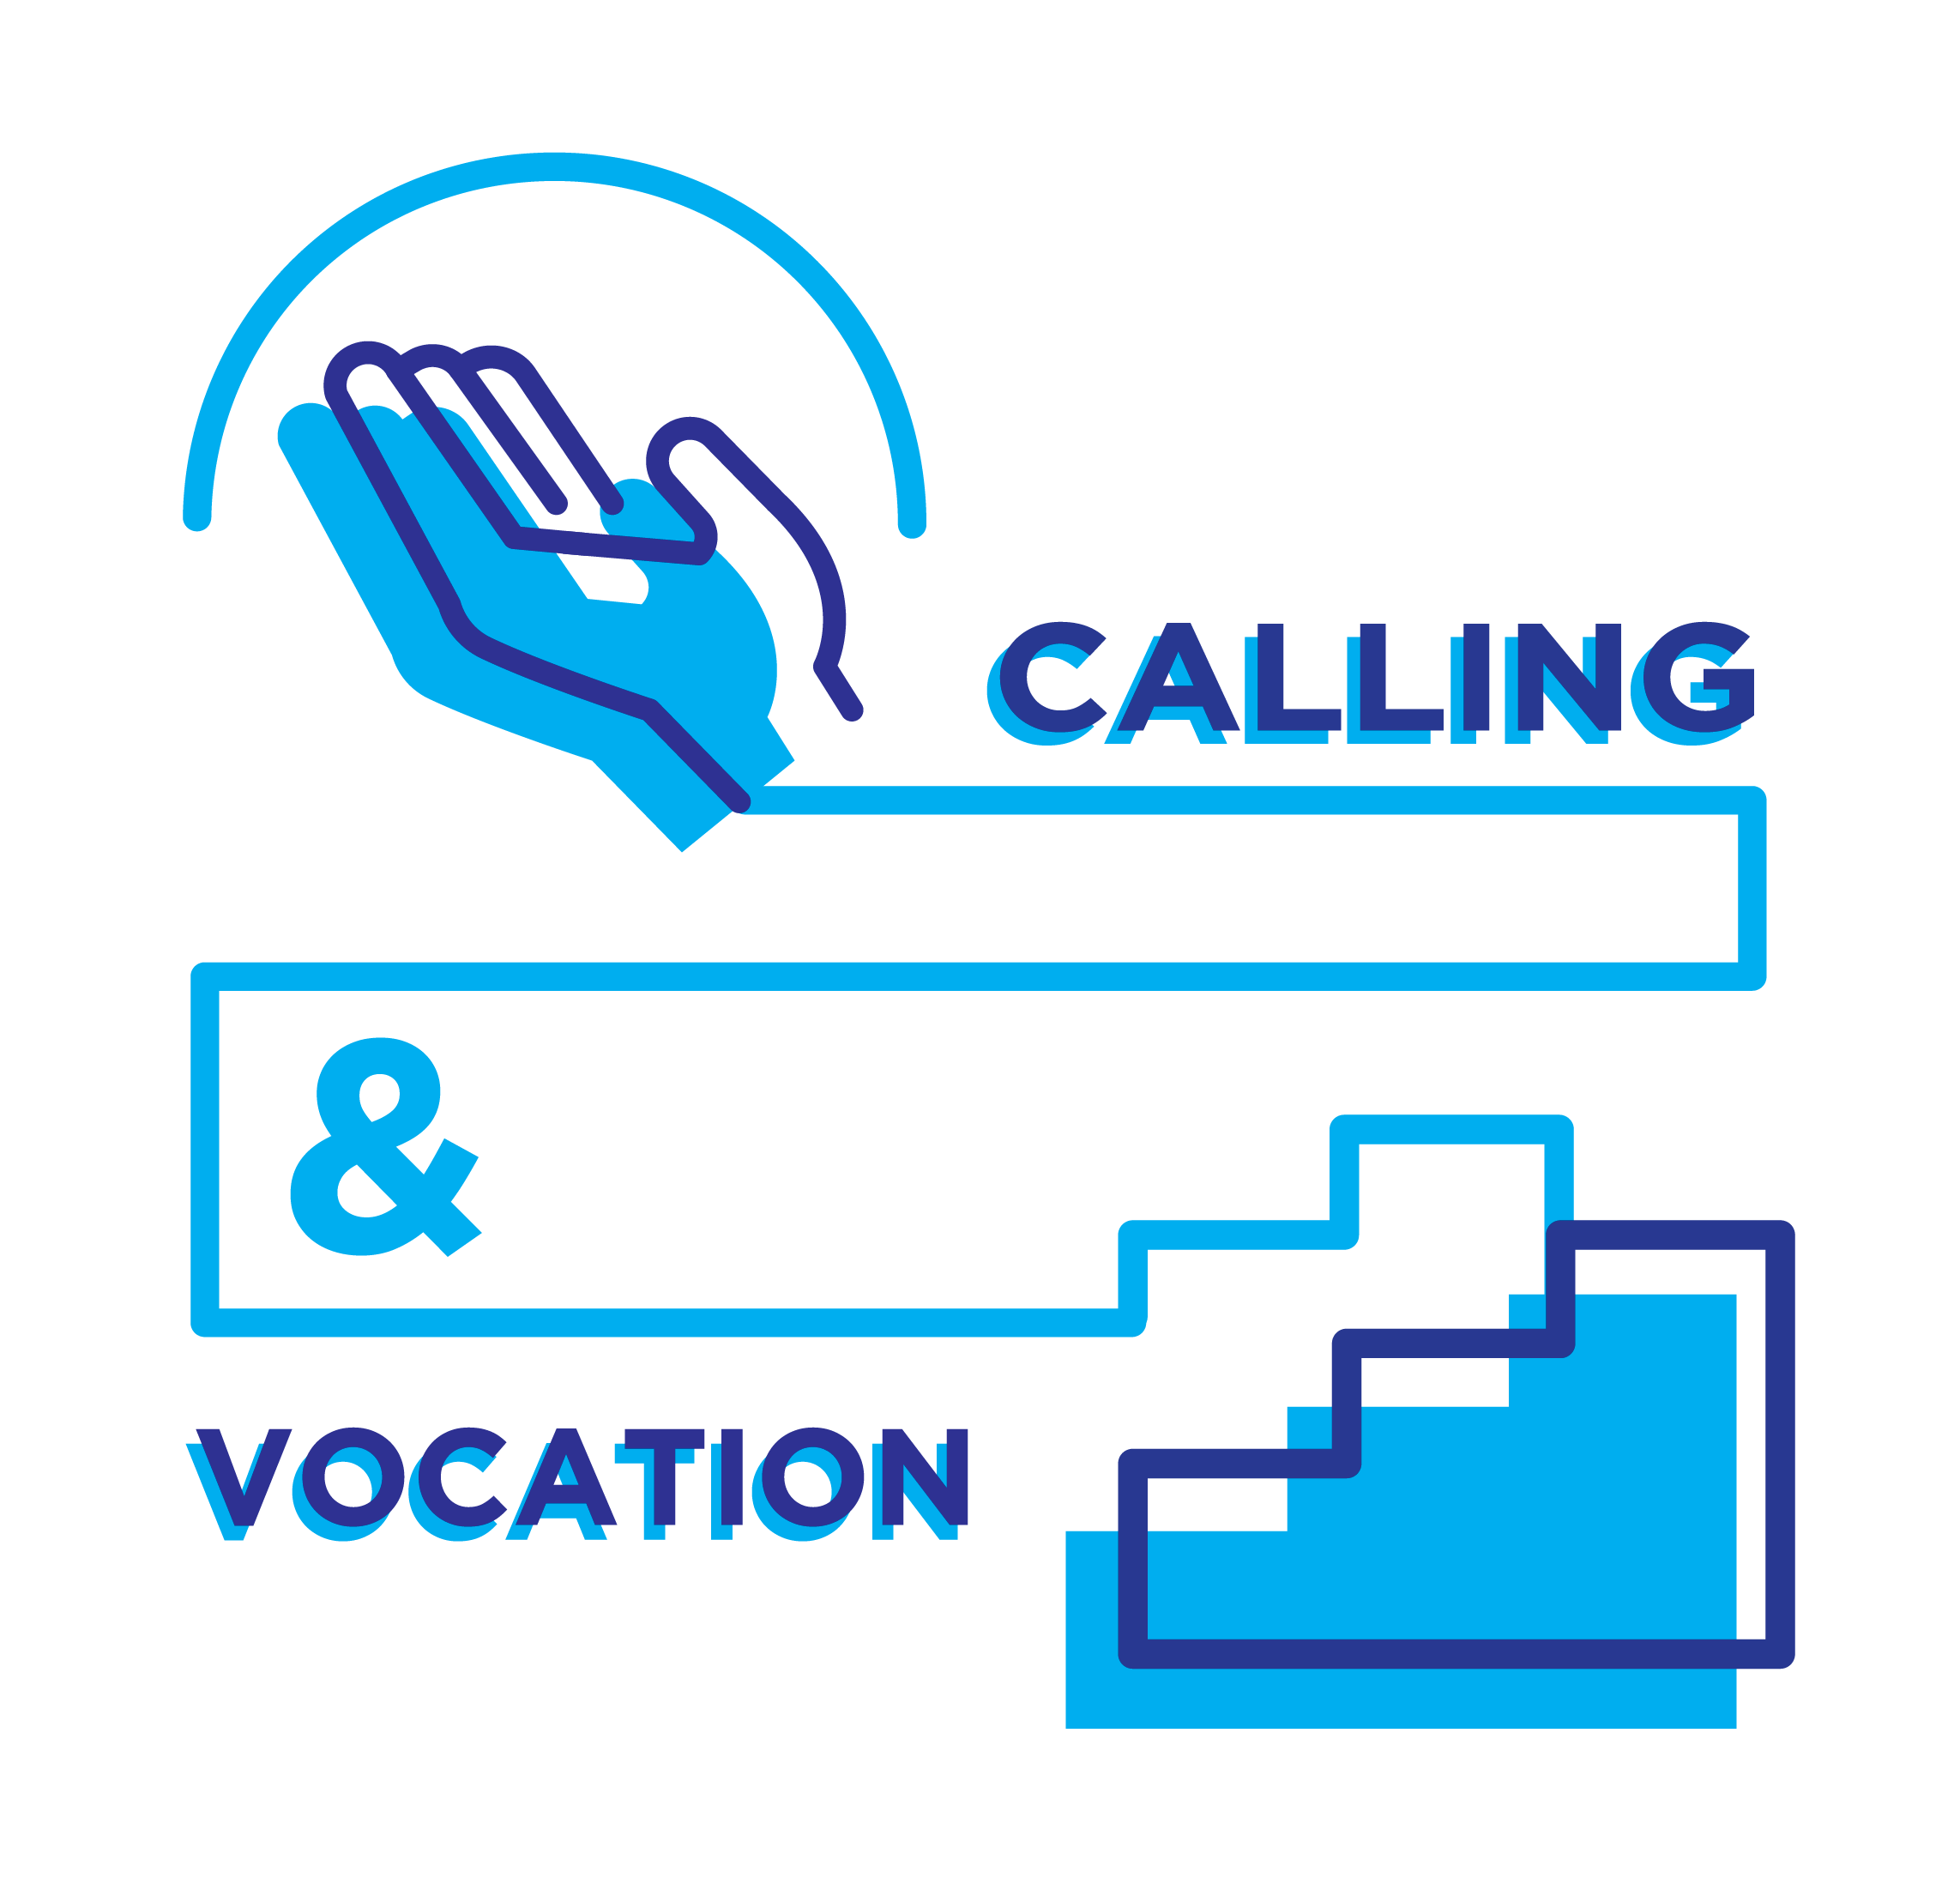 Calling + Vocation_icons&presets-01.png